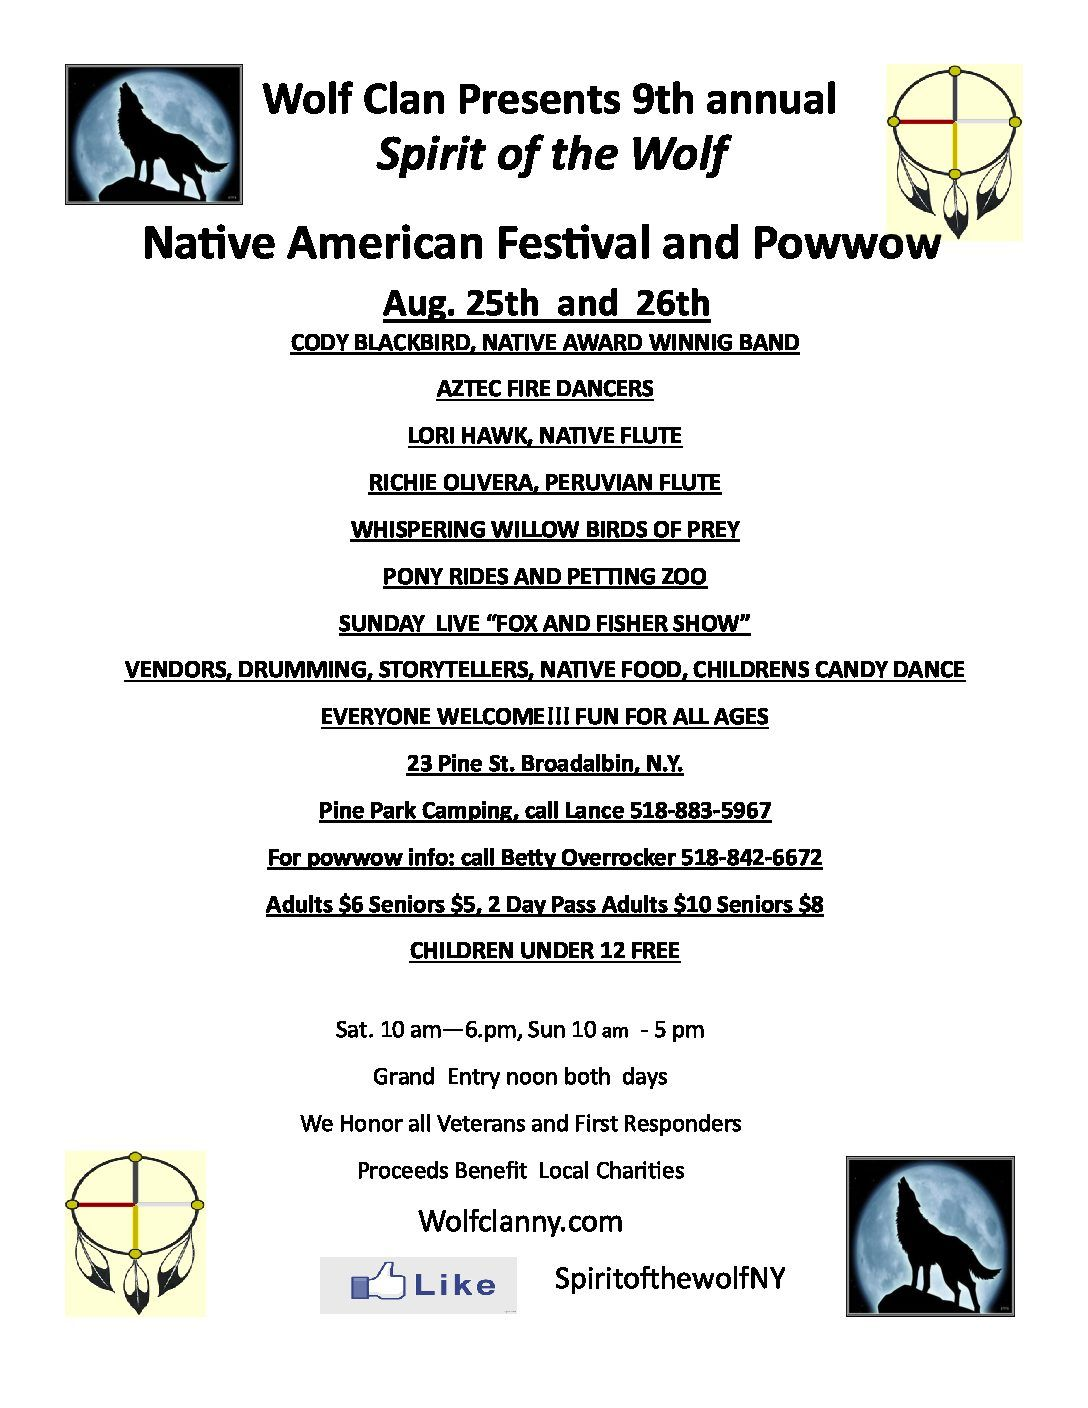 Th annual spirit of the wolf native american festival and powwow